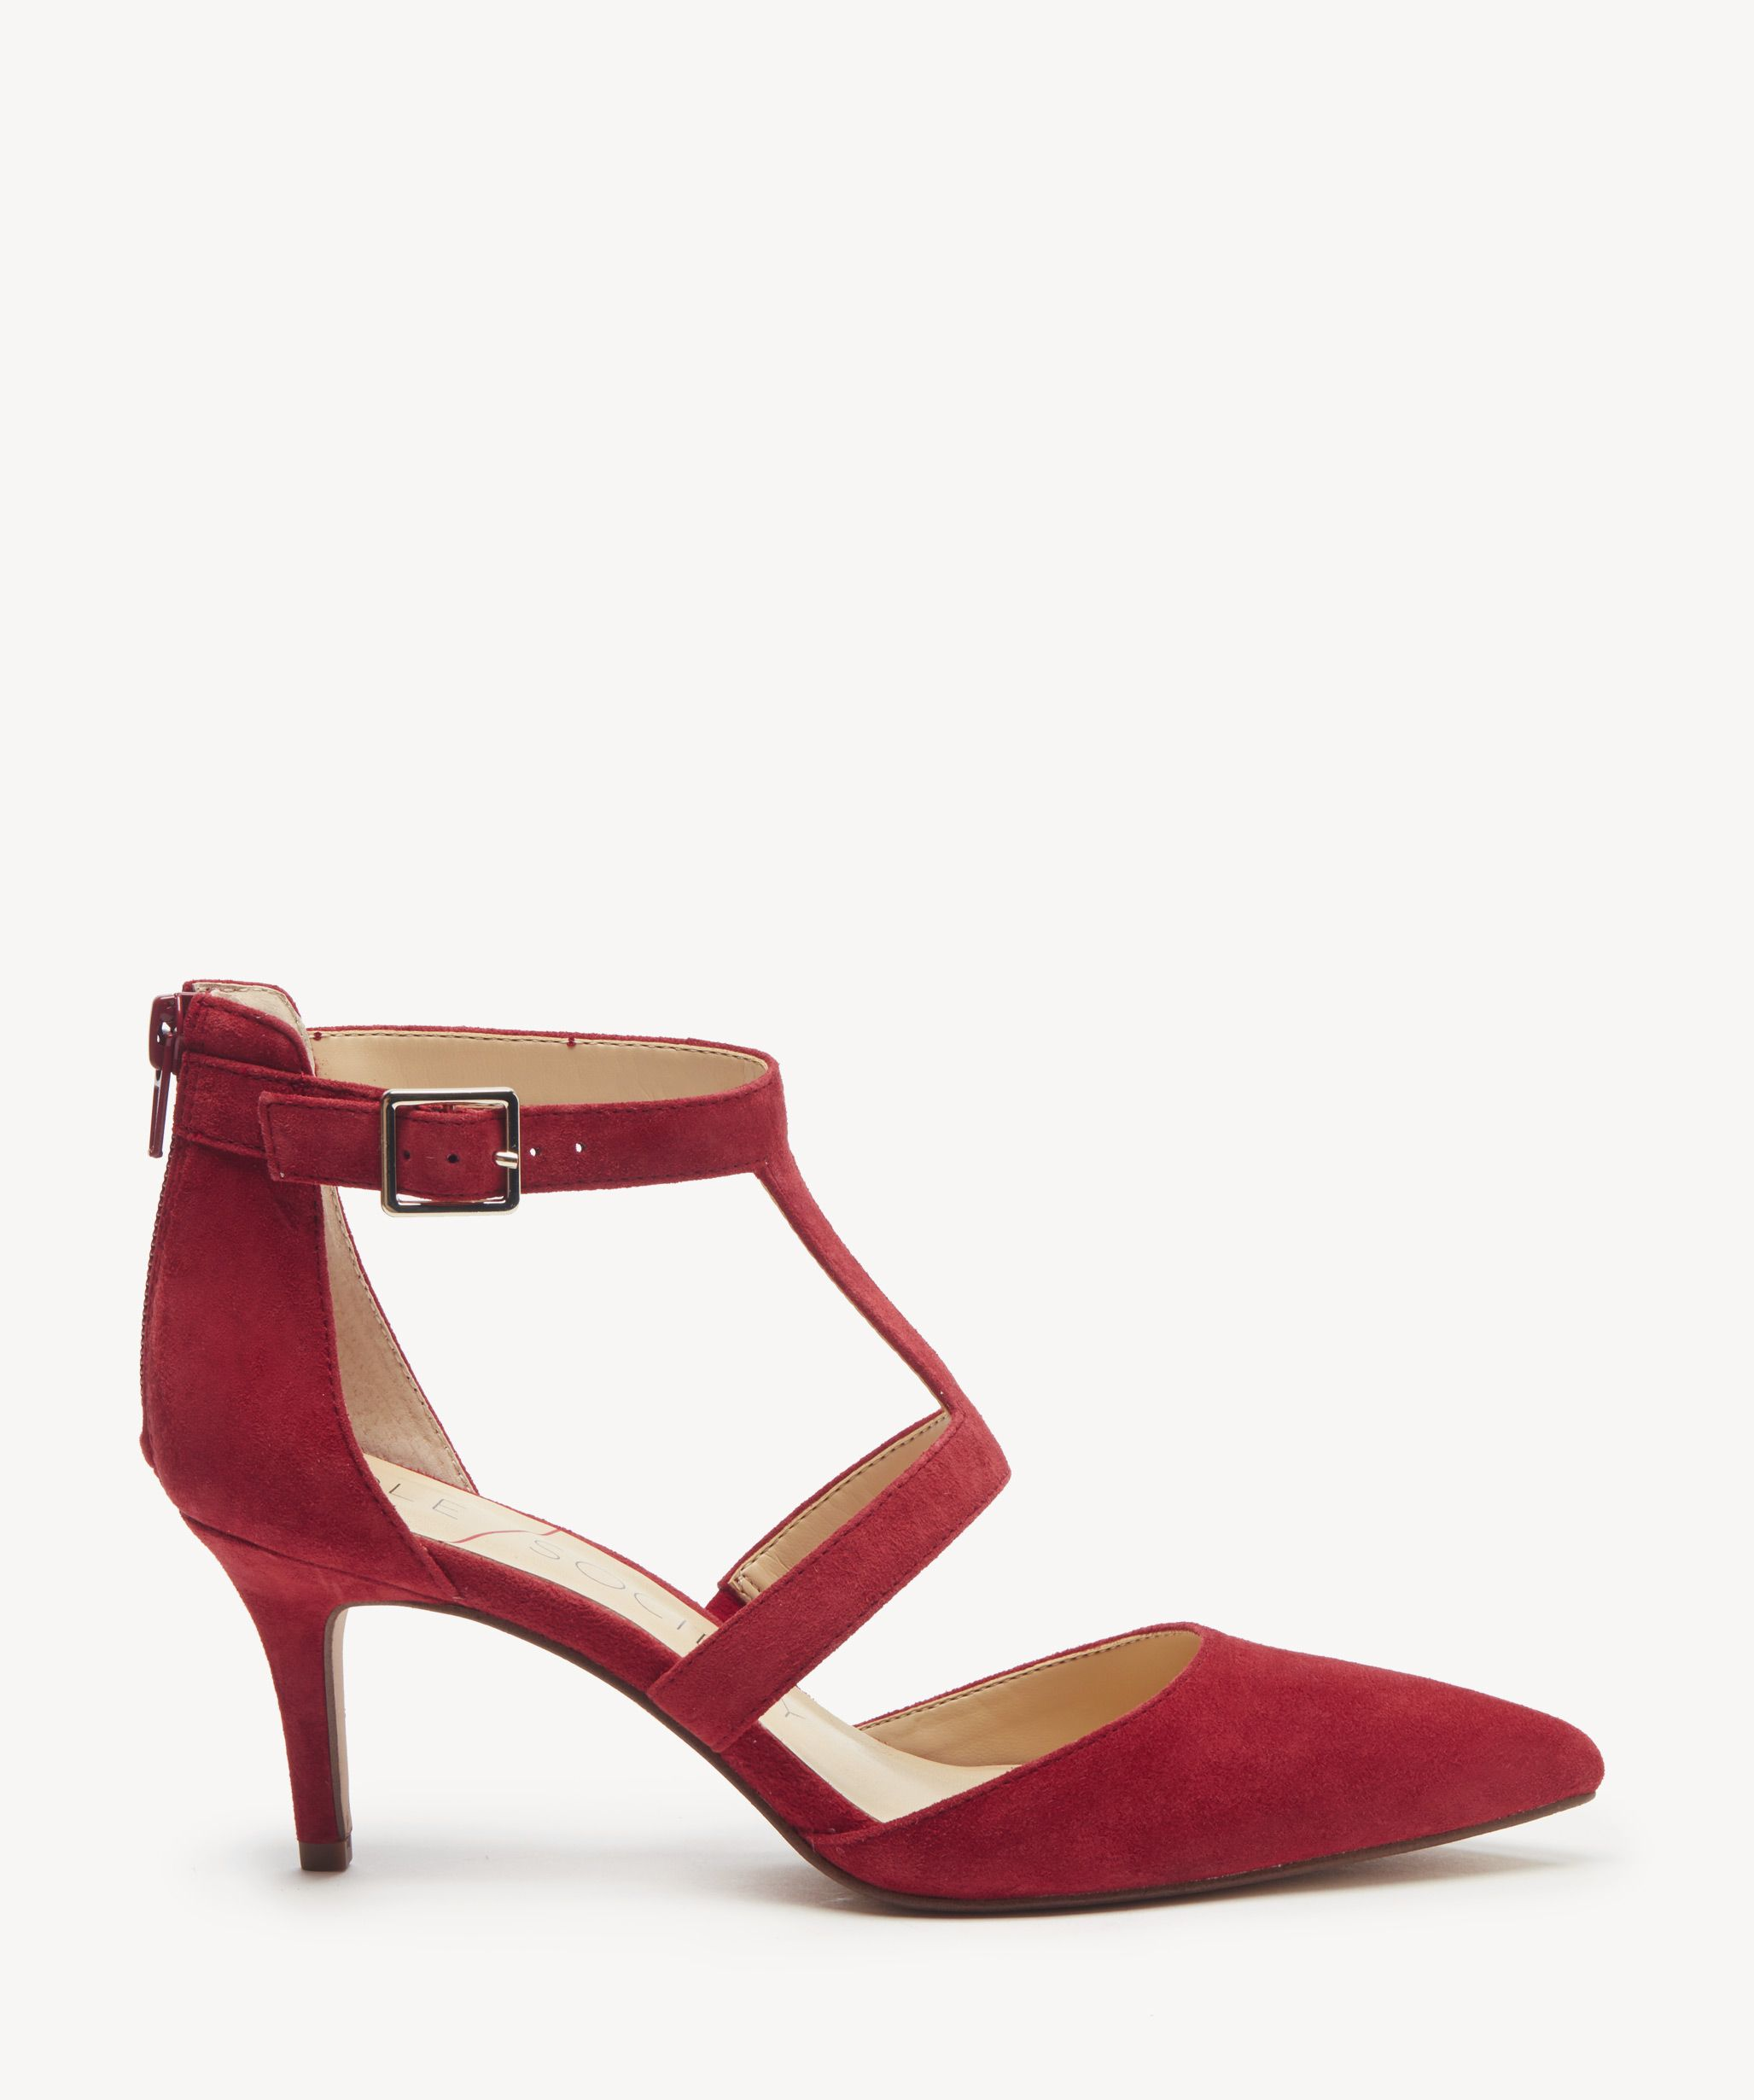 575a1c4ad68a Women s Edelyn T Strap Pumps Deep Red